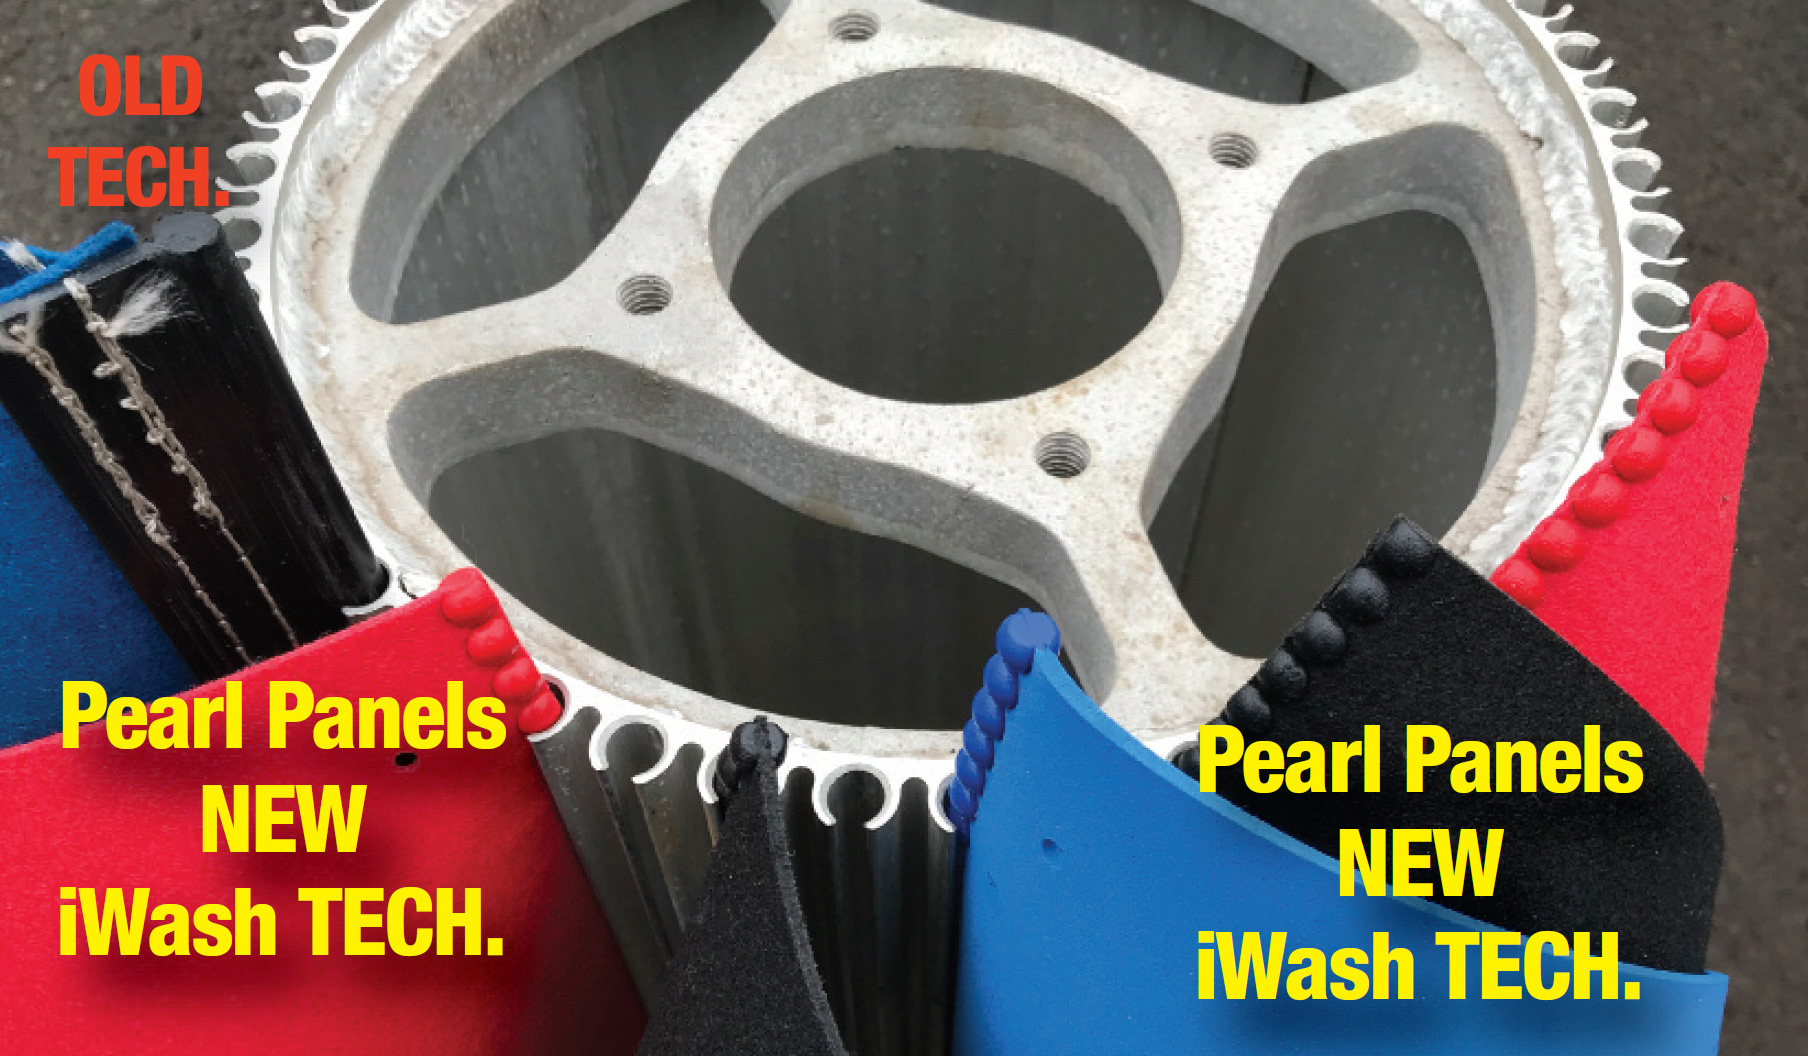 Example of new iWash products vs the traditional technology.